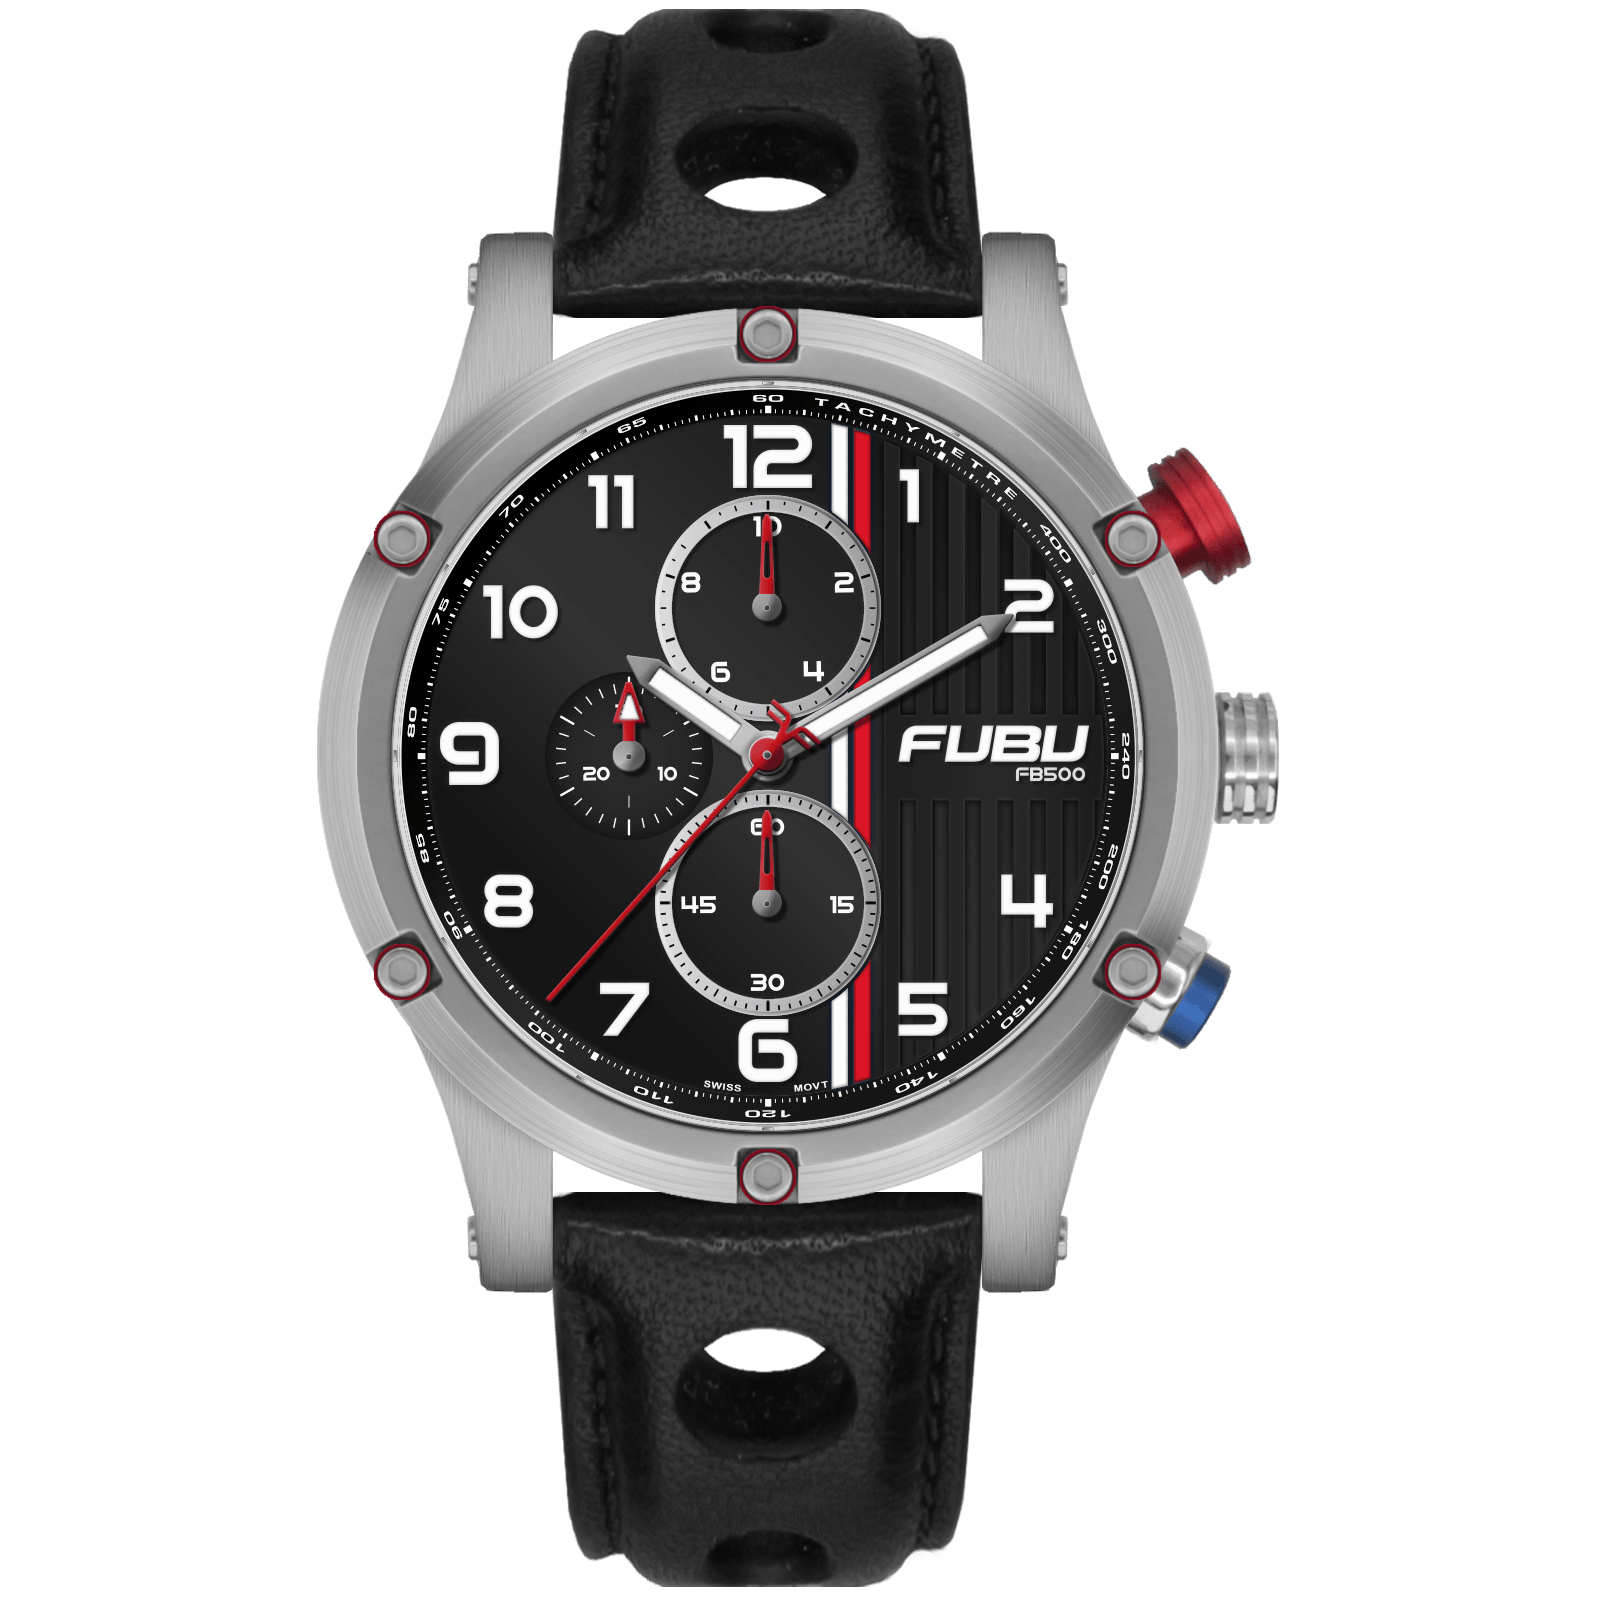 FB500 #05 - FUBU Watch Swiss Made Movement, Sapphire Crystal, Quick Release System, 10ATM water resistance. 24 Month Warranty. Lifestyle Affordable Timepieces